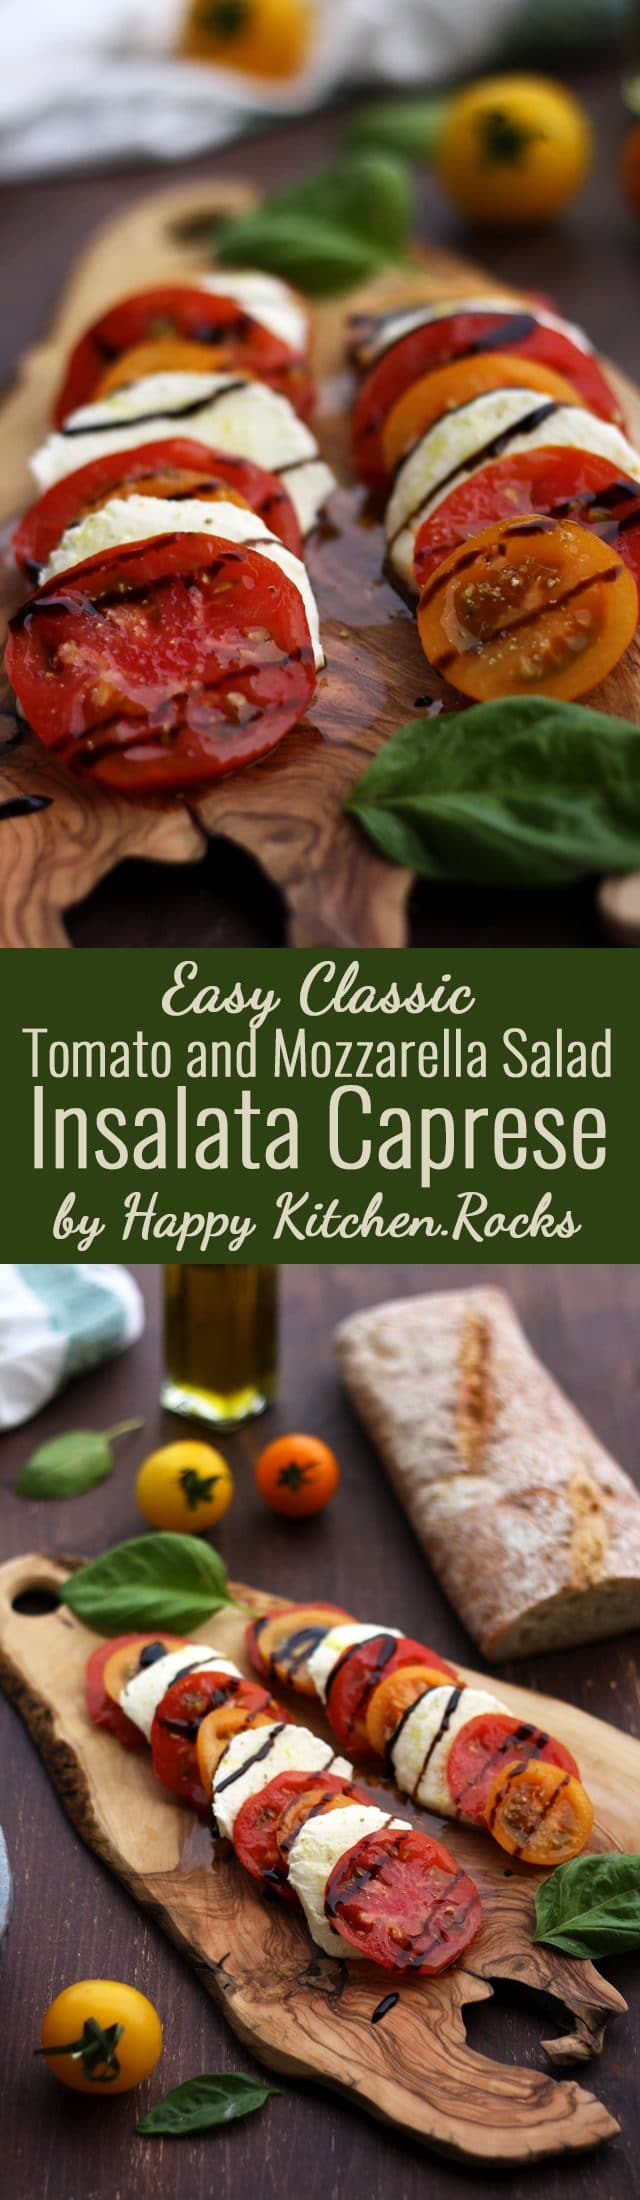 Classic Insalata Caprese (Tomato Mozzarella Salad) is the perfect quick appetizer or salad packed with summer flavors! Light, refreshing and so easy to make! A great way to enjoy in-season tomatoes at the fullest. #saladrecipes #recipe #summerveggies #healthyrecipes #Mediterraneanfood #salad #summersalad #tomatoes #caprese #tomatorecipe #mozzarella #tomatosalad #saladrecipe #summerrecipe